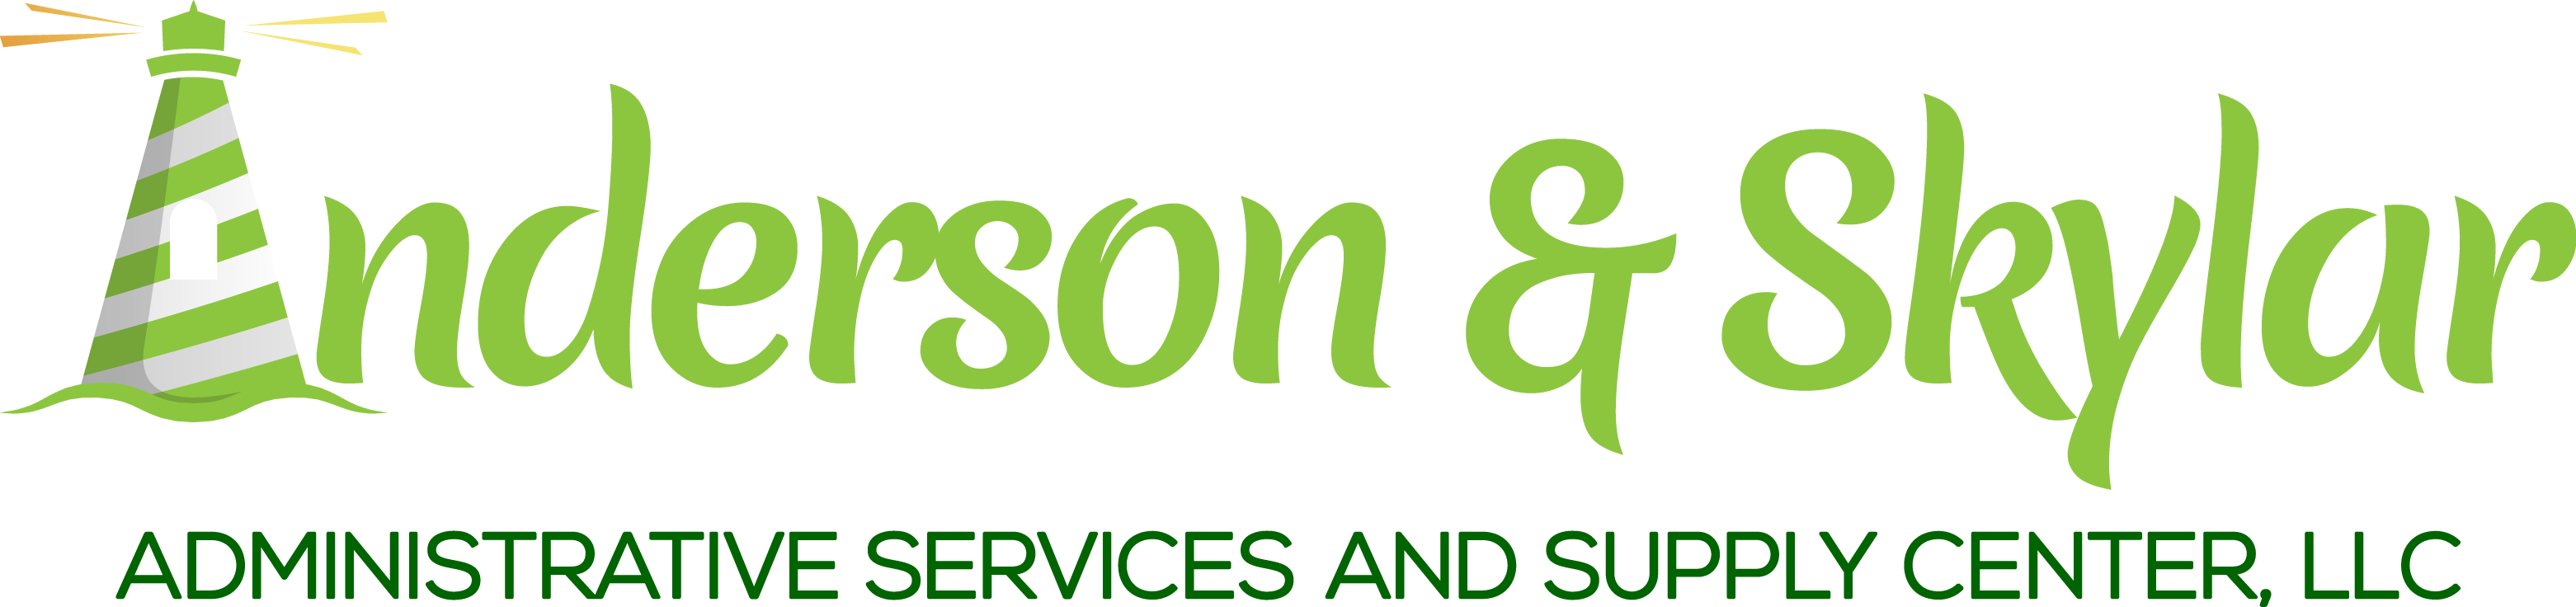 Anderson & Skylar Administrative Services and Supply Center, LLC